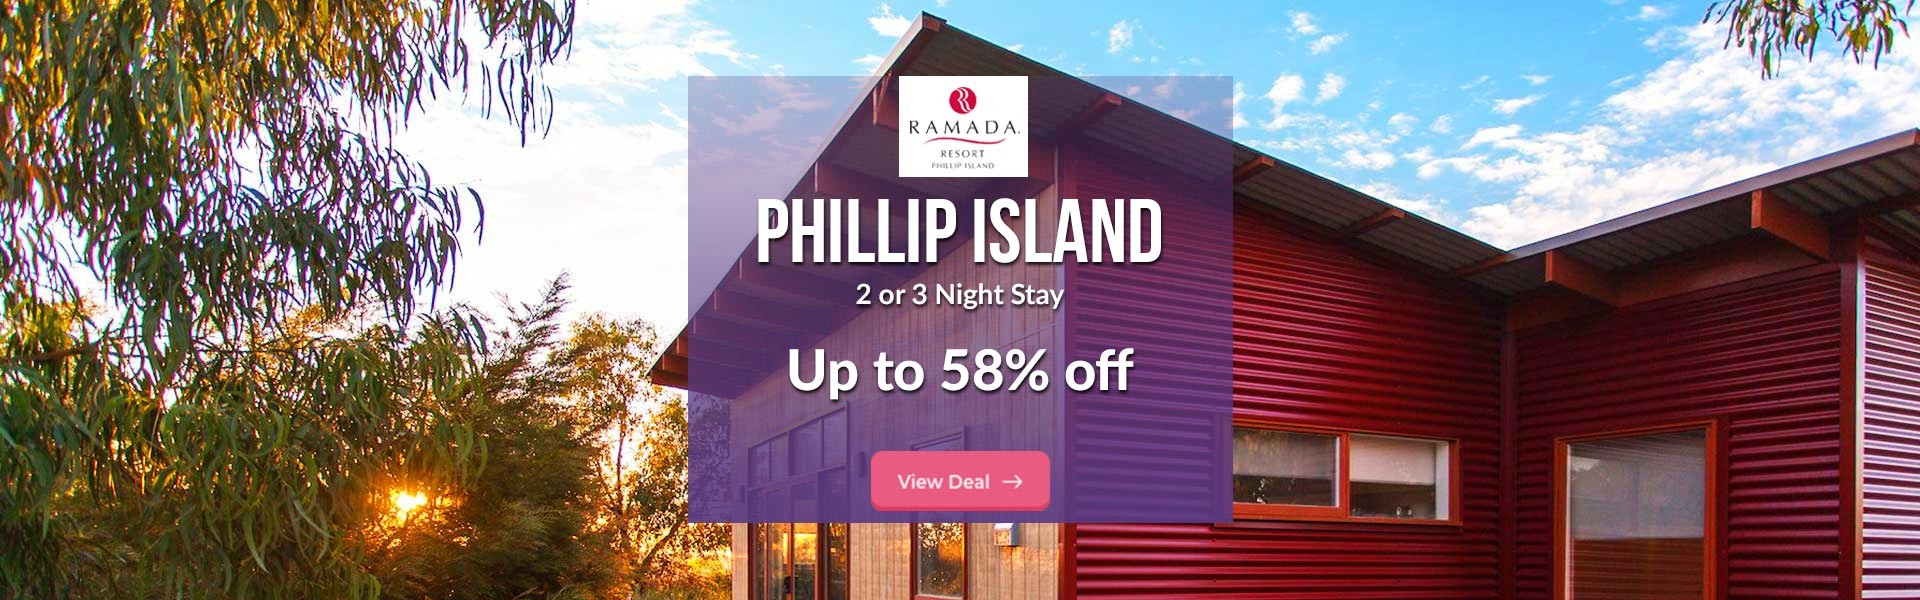 2 or 3 night stay at Ramada Phillip Island